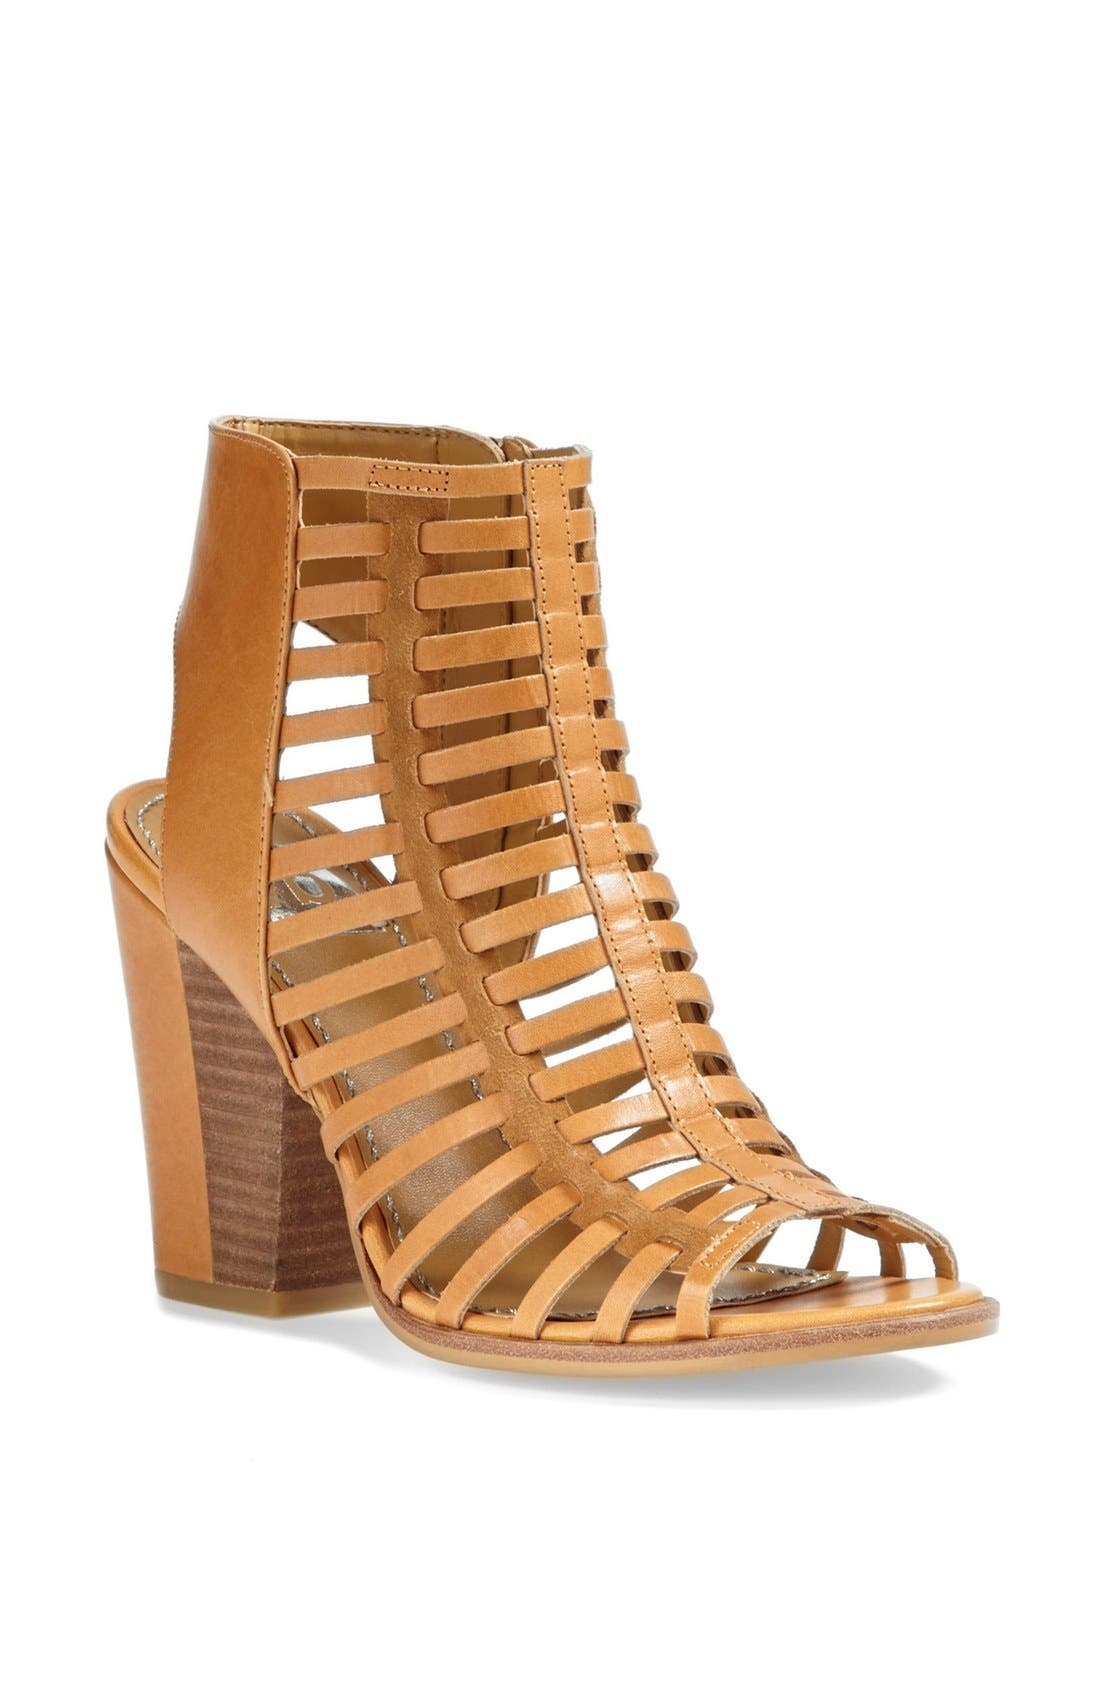 Alternate Image 1 Selected - DV by Dolce Vita Caged Sandal